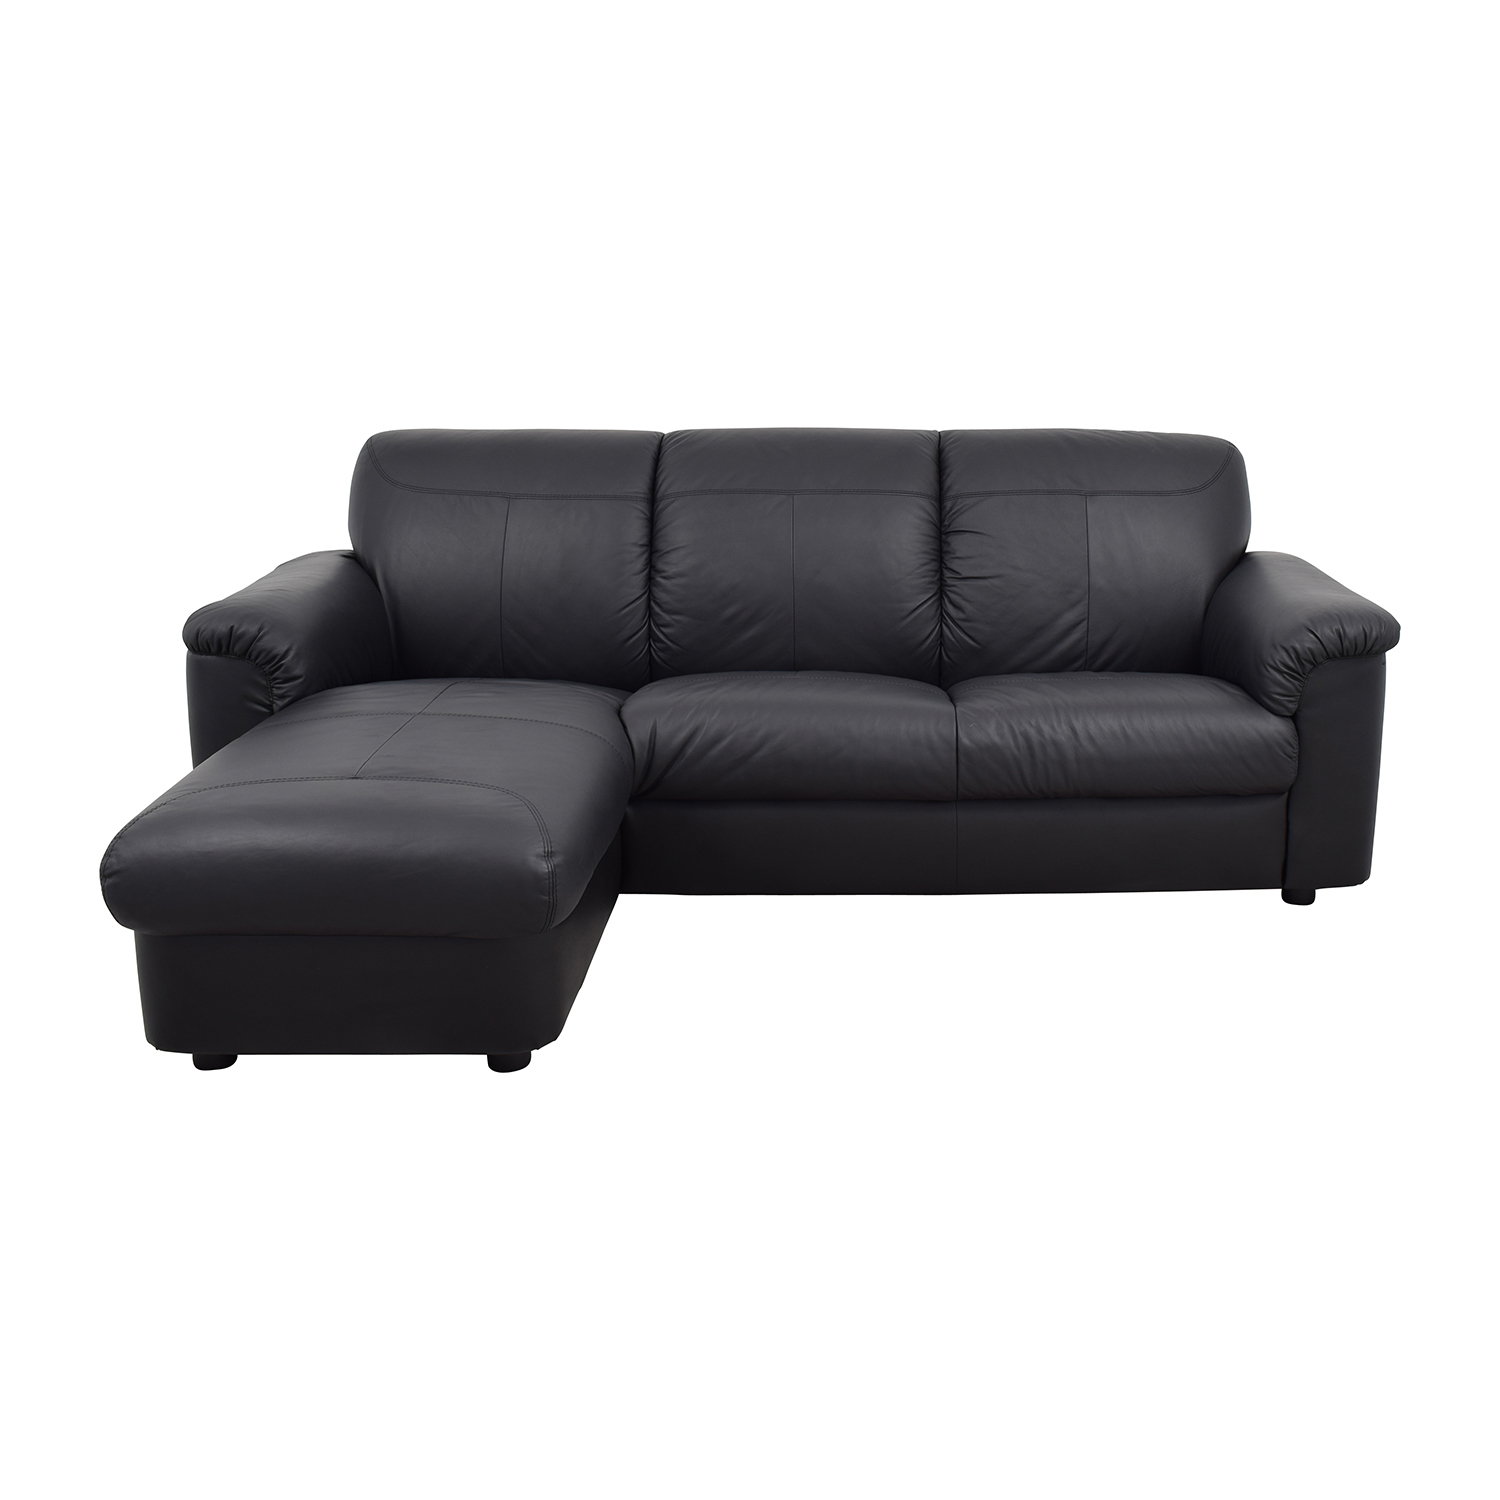 IKEA IKEA Black 3-Piece Leather Sectional used